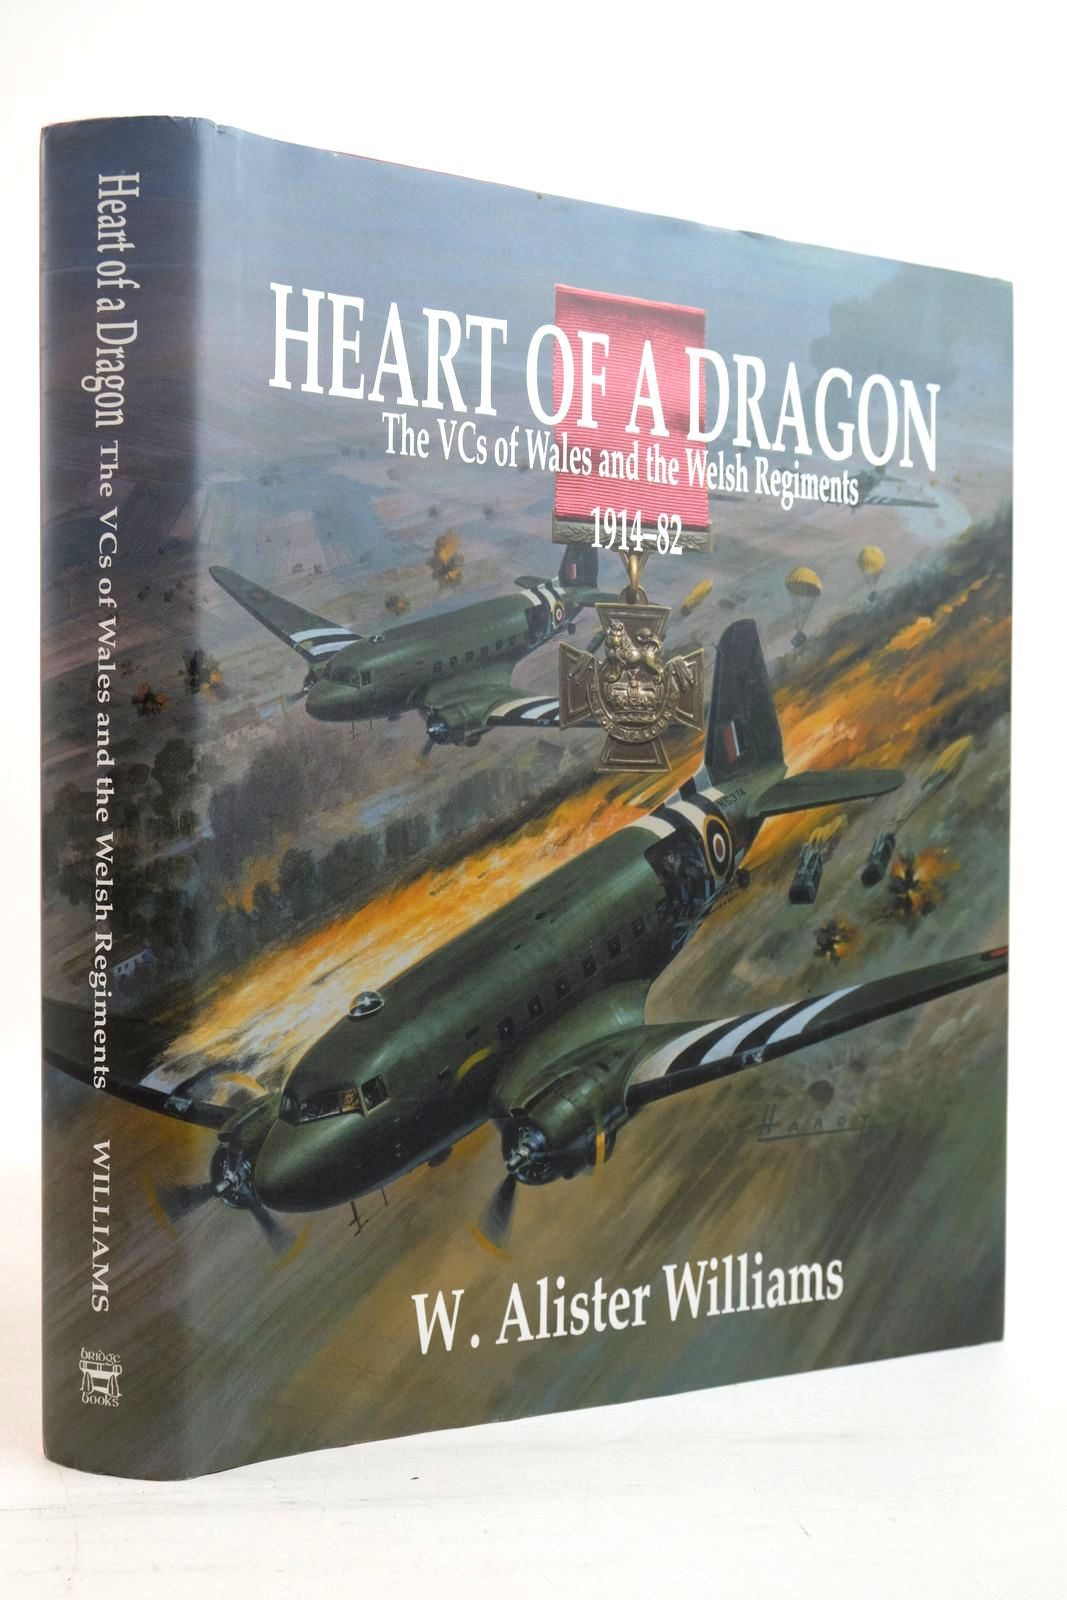 Photo of HEART OF A DRAGON THE VCS OF WALES AND THE WELSH REGIMENTS 1914-82- Stock Number: 2134491